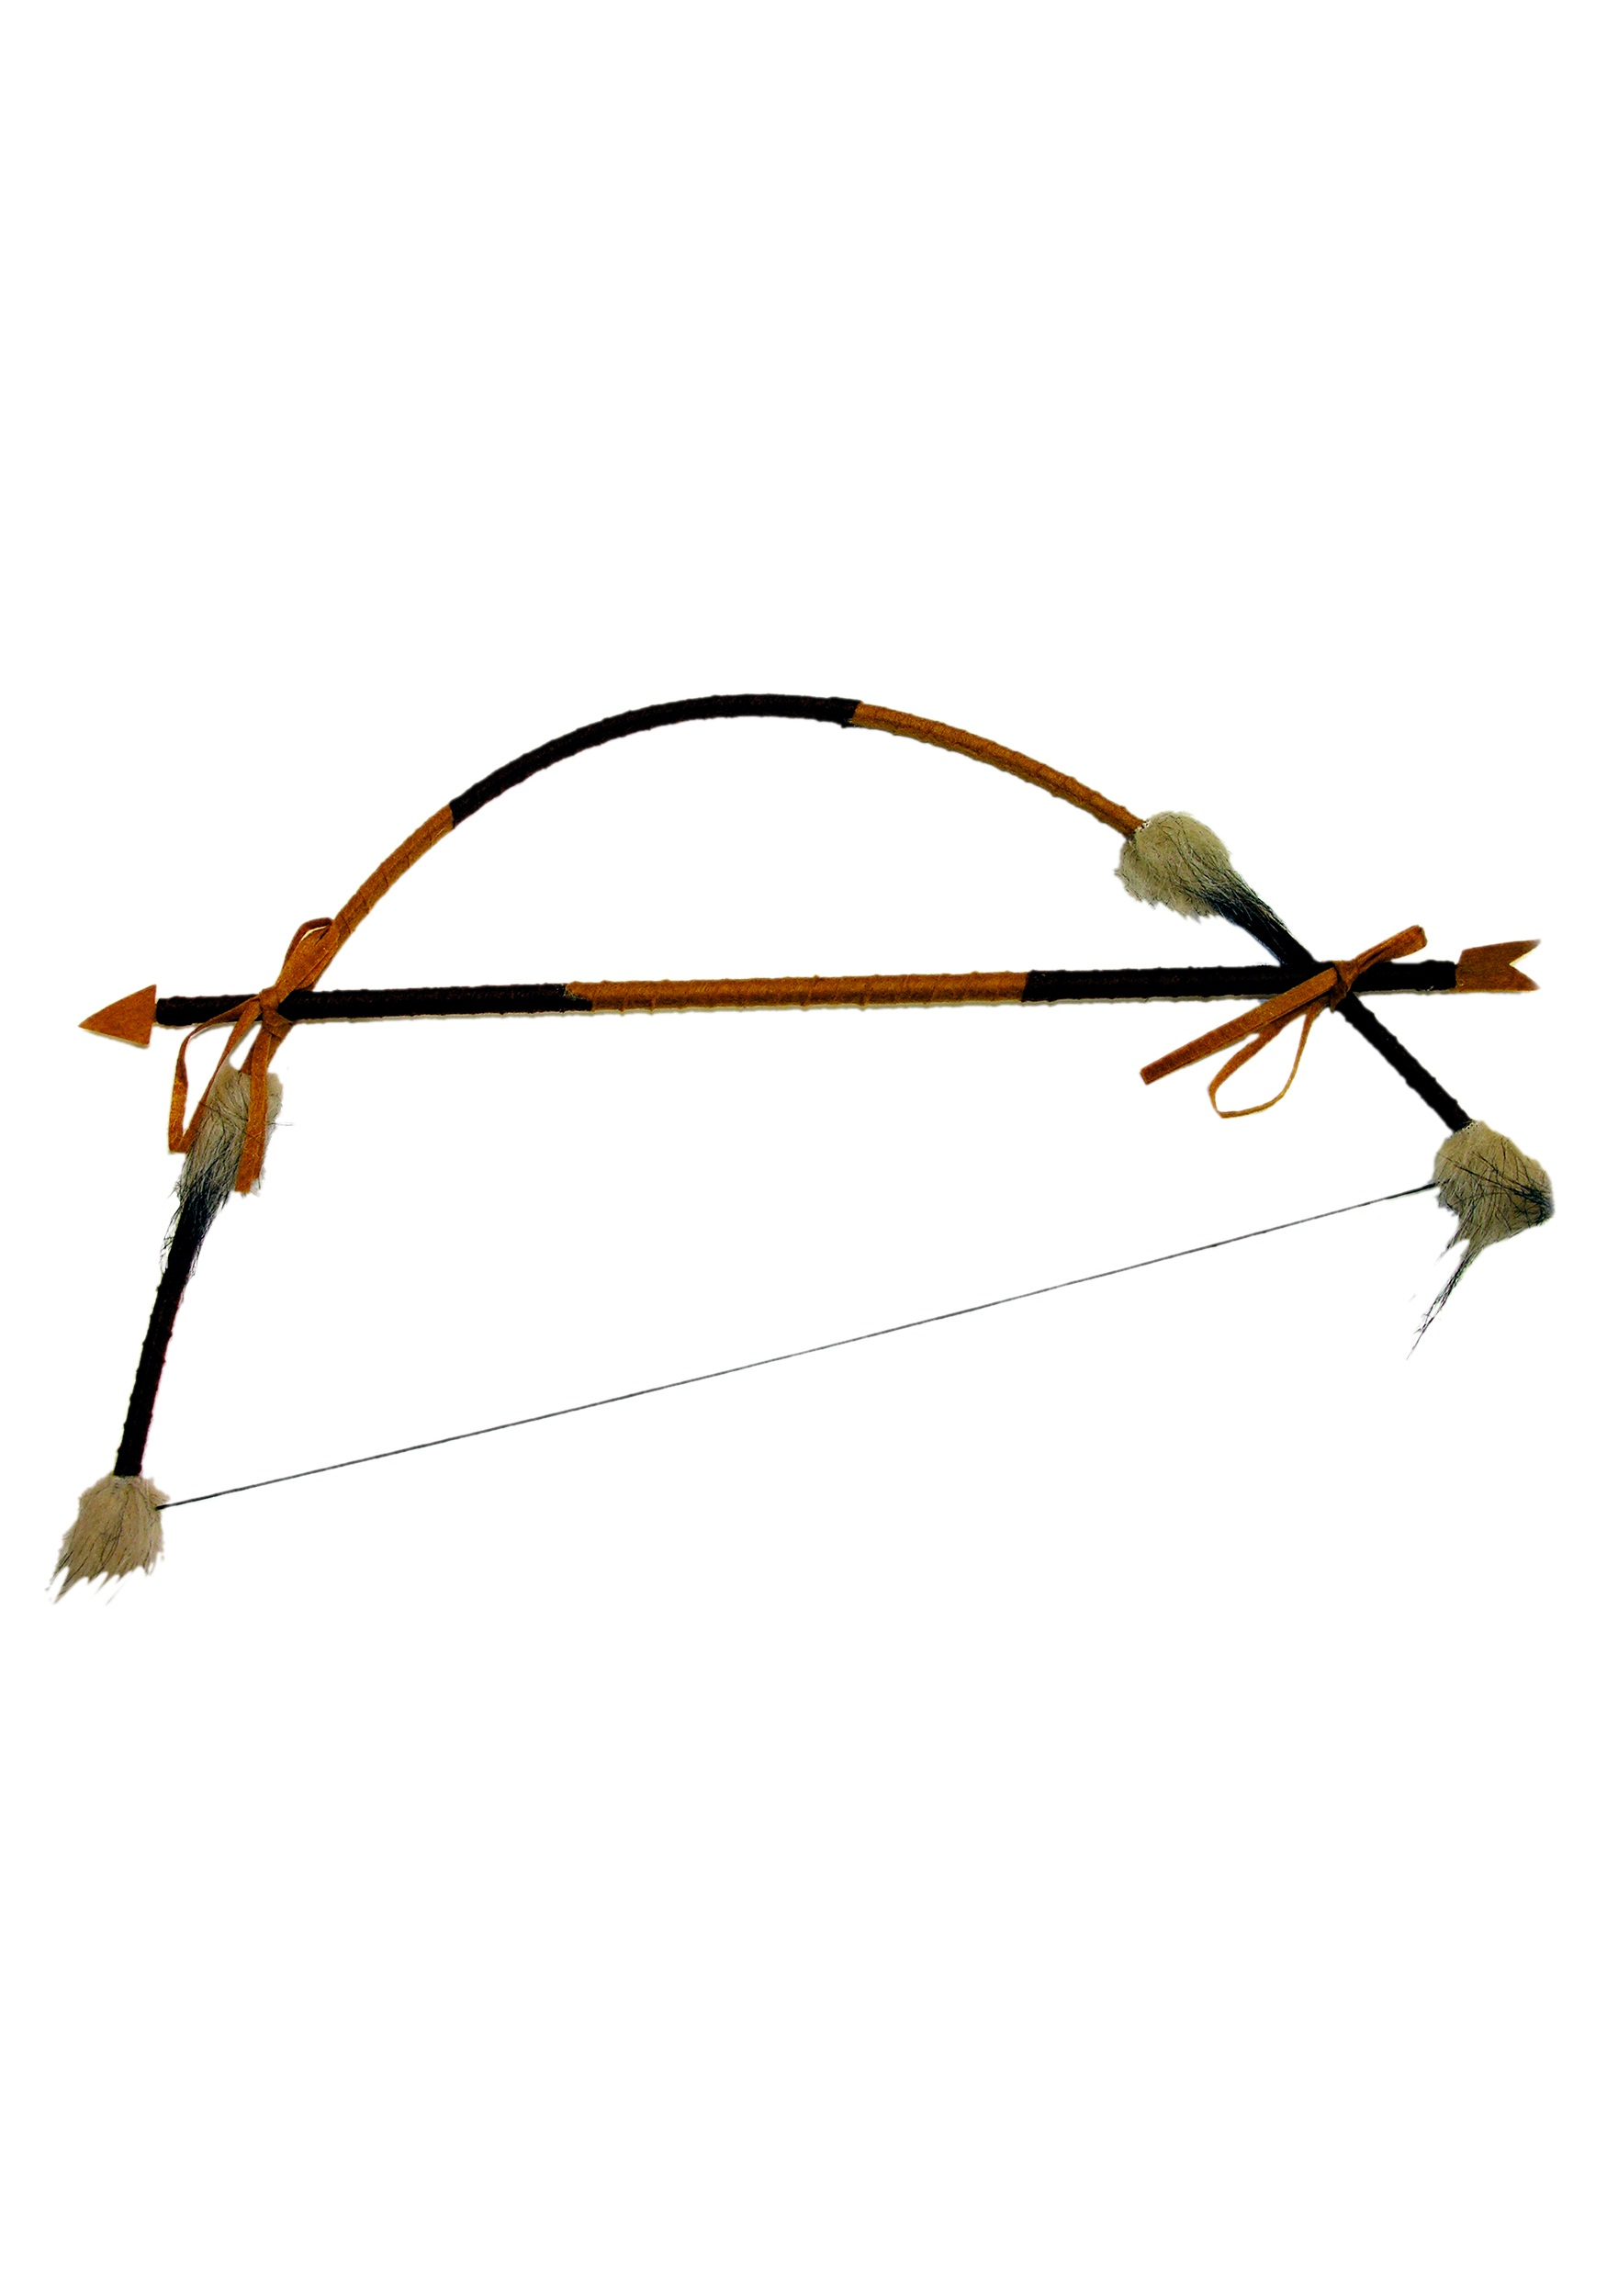 Feathered Indian Bow and Arrow Set FO59041